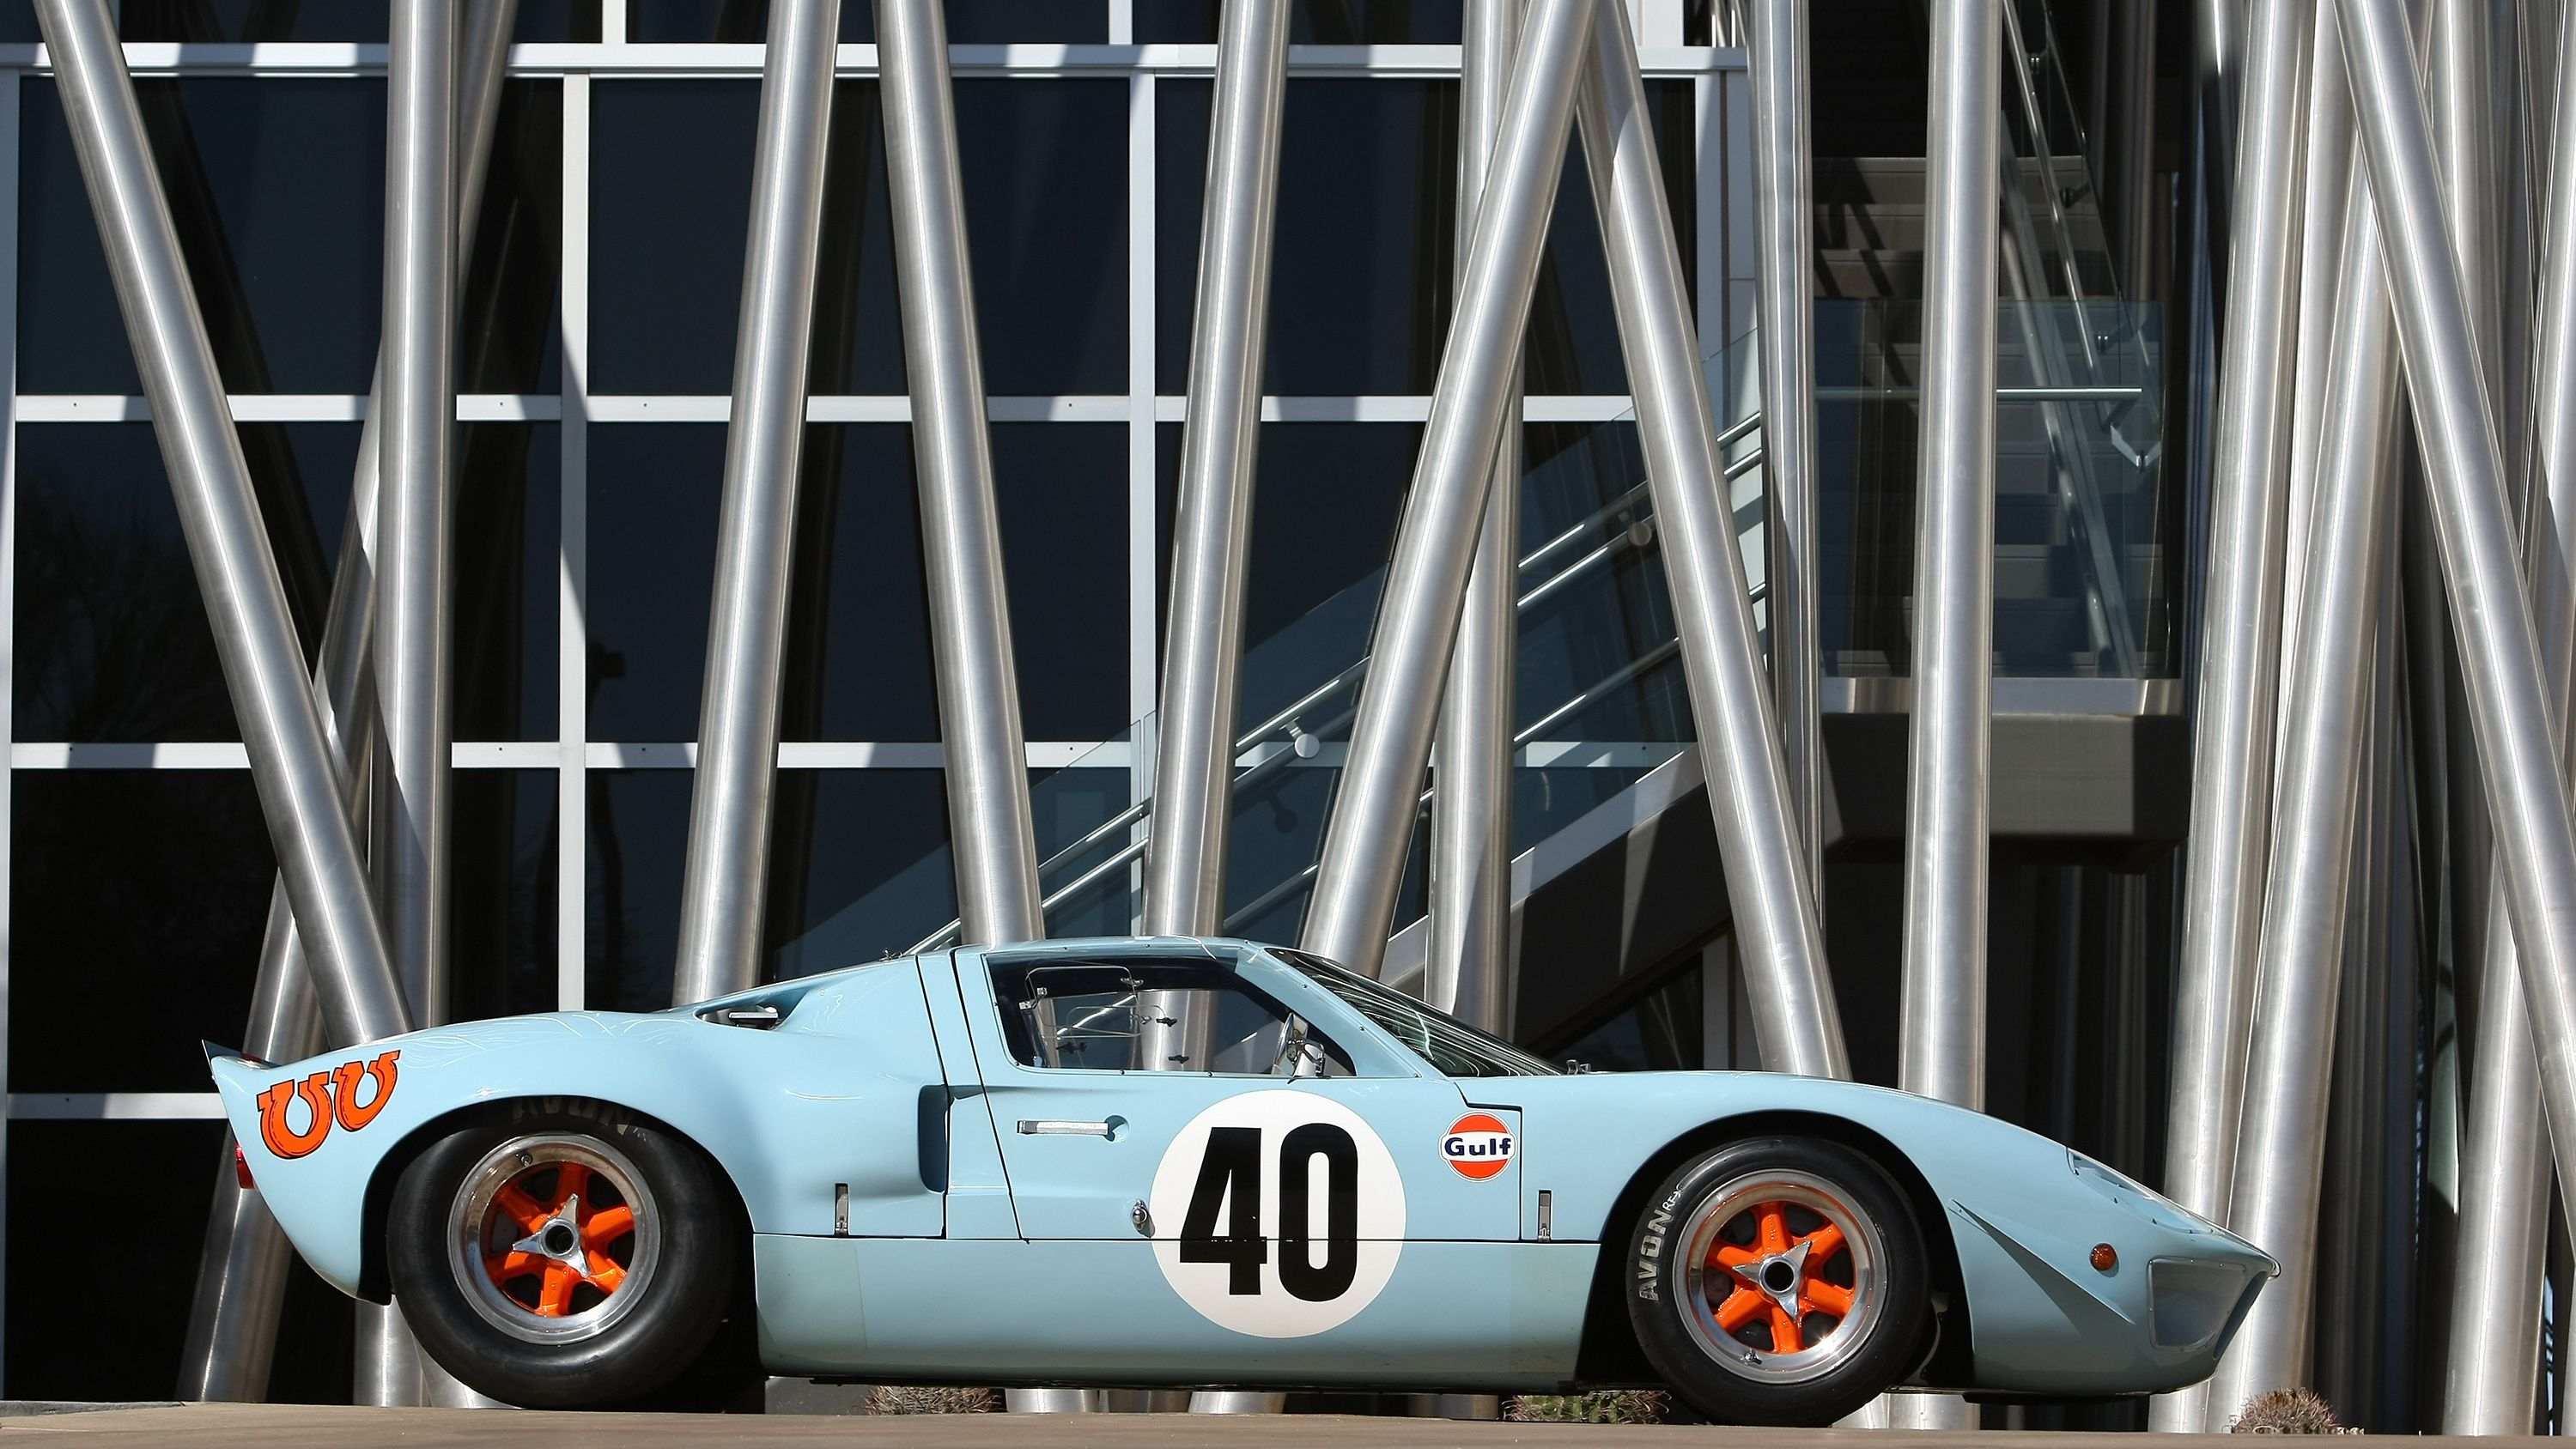 Ford GT40 Gulf-Mirage Lightweight Racing Car 1968